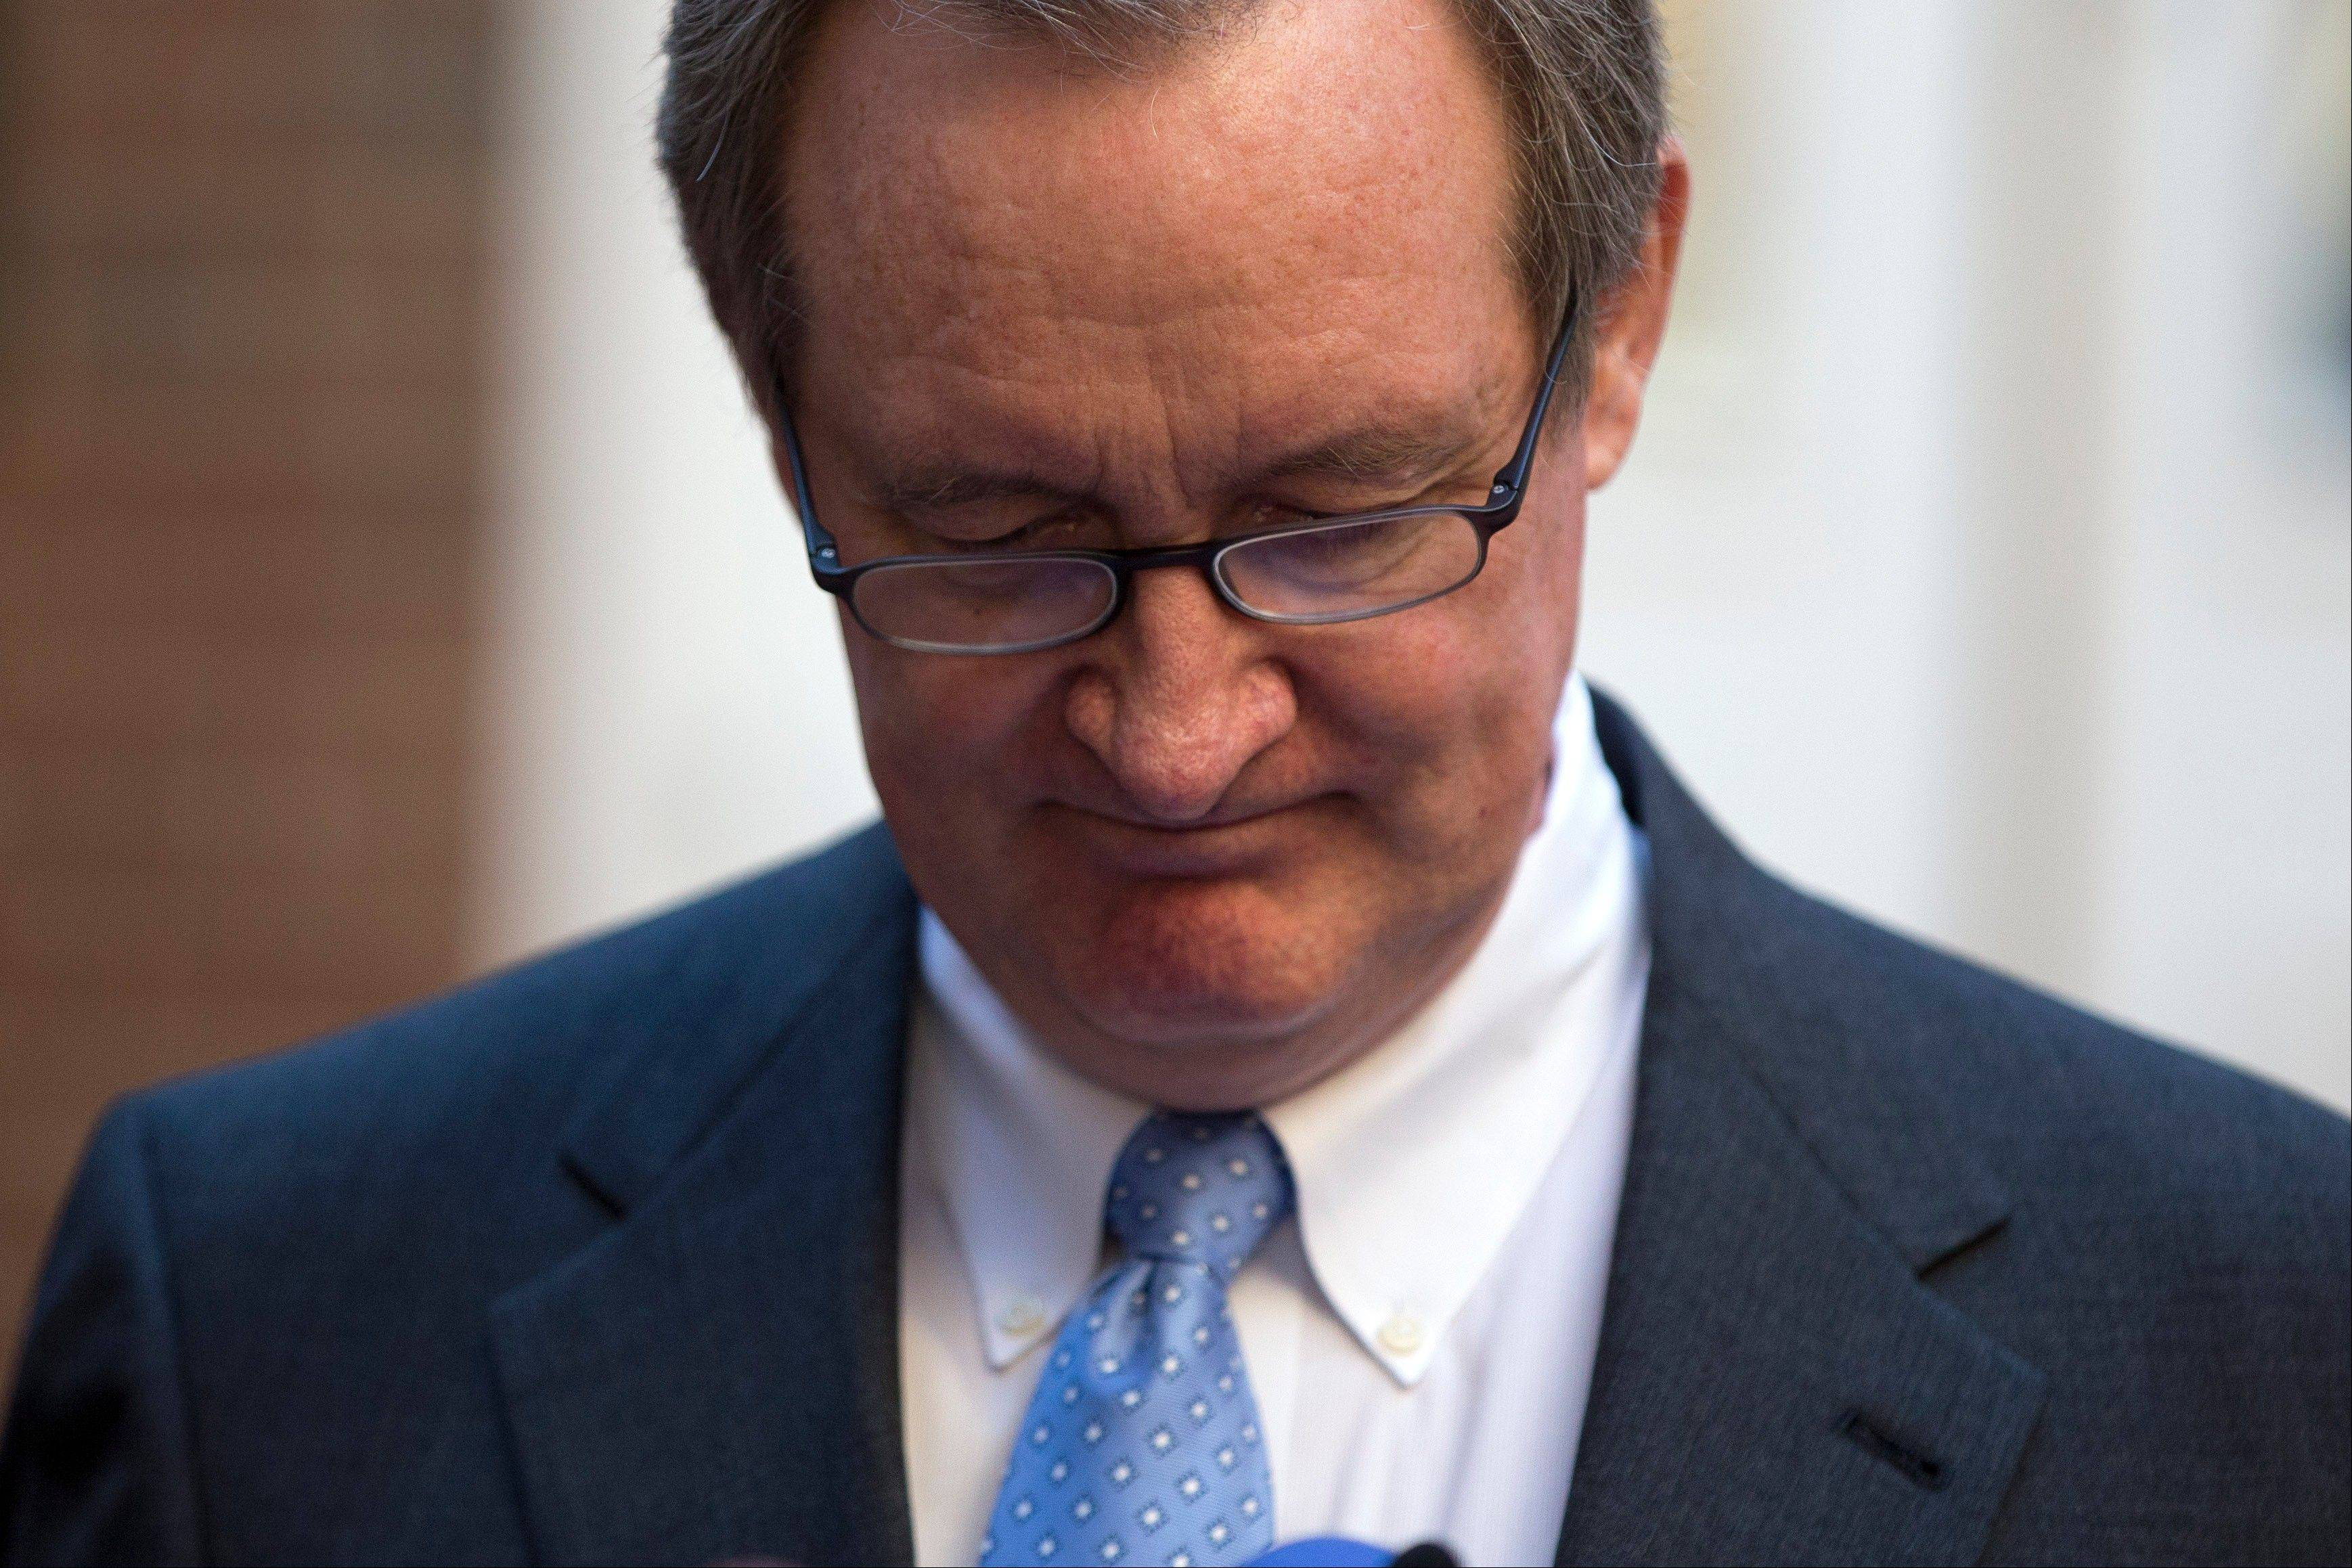 Sen. Michael Crapo, an Idaho Republican,looks down as he reads a statement outside Alexandria General District Court in Alexandria, Va., Friday.